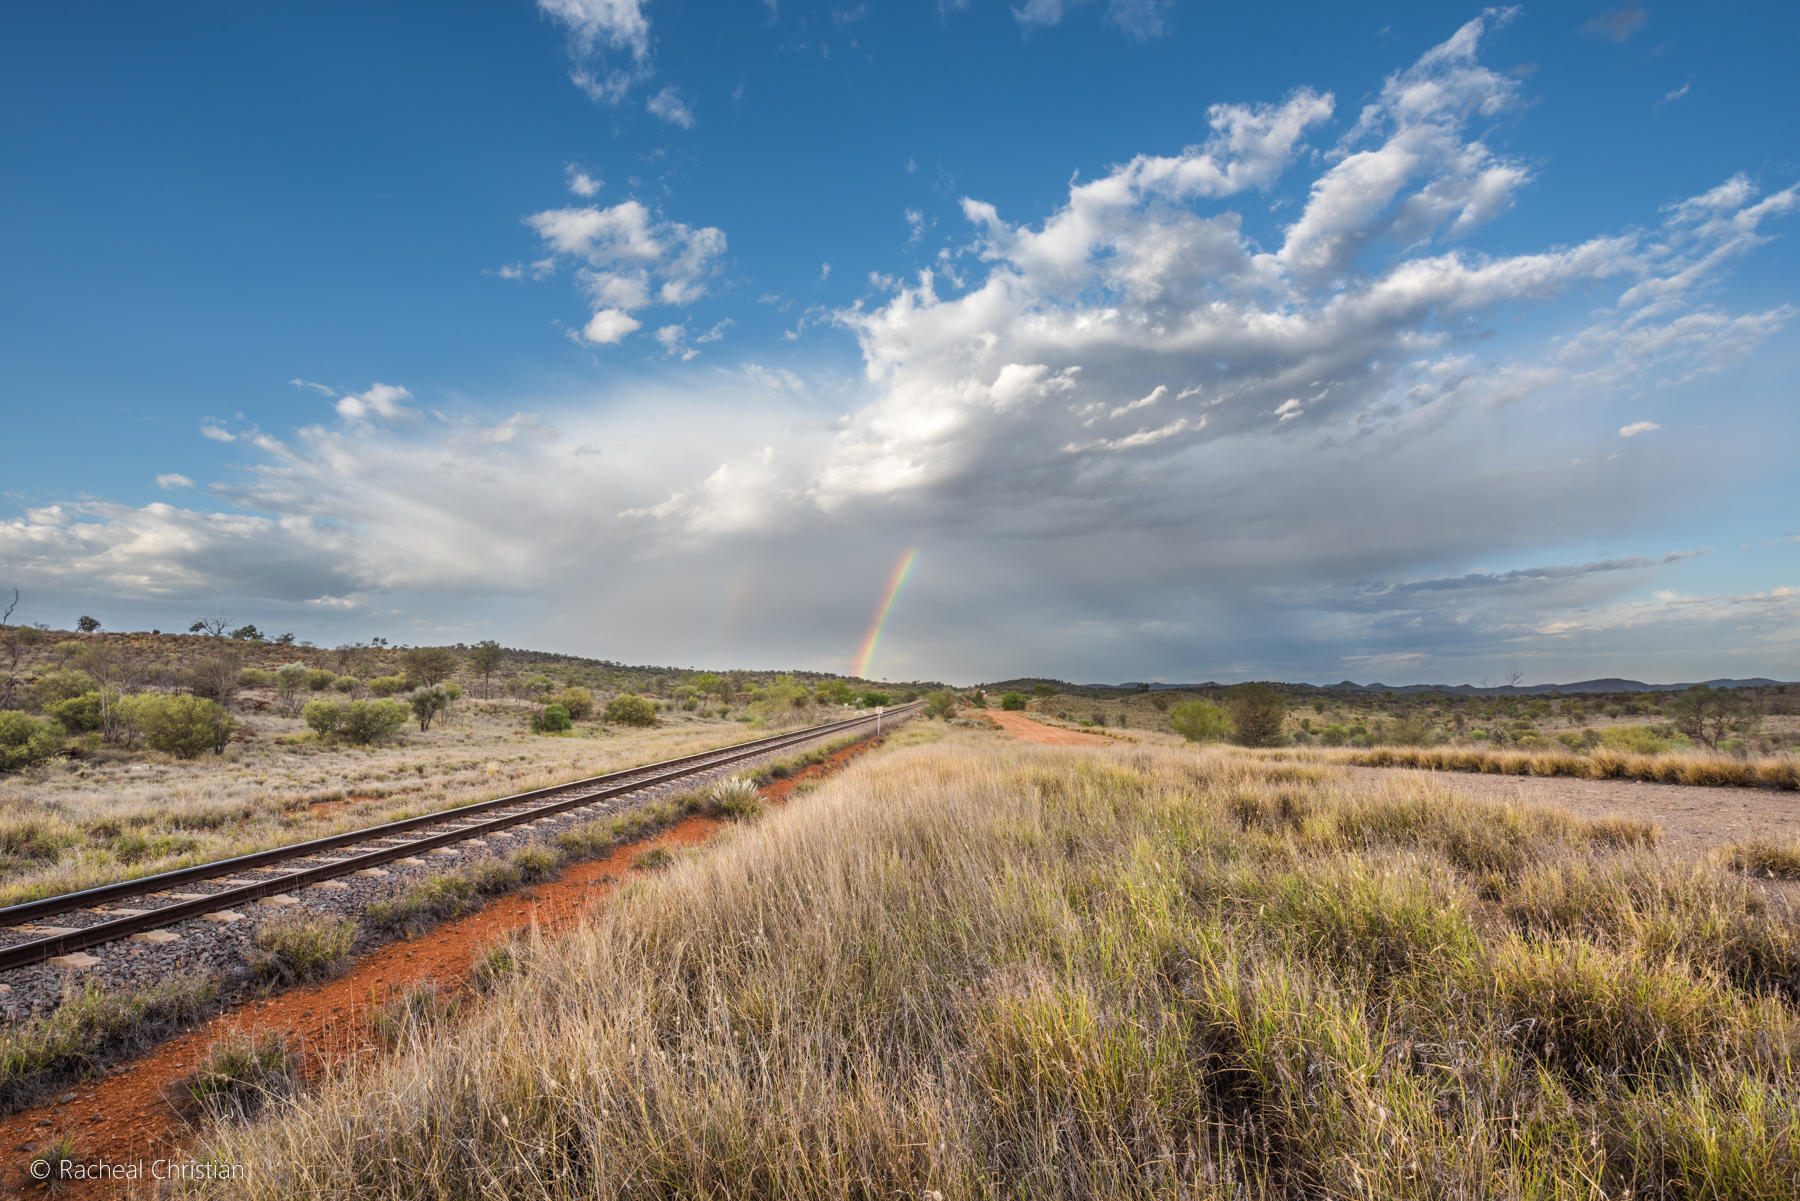 Photo Of The Week: Rainbows Over The Ghan Railway by Racheal Christian